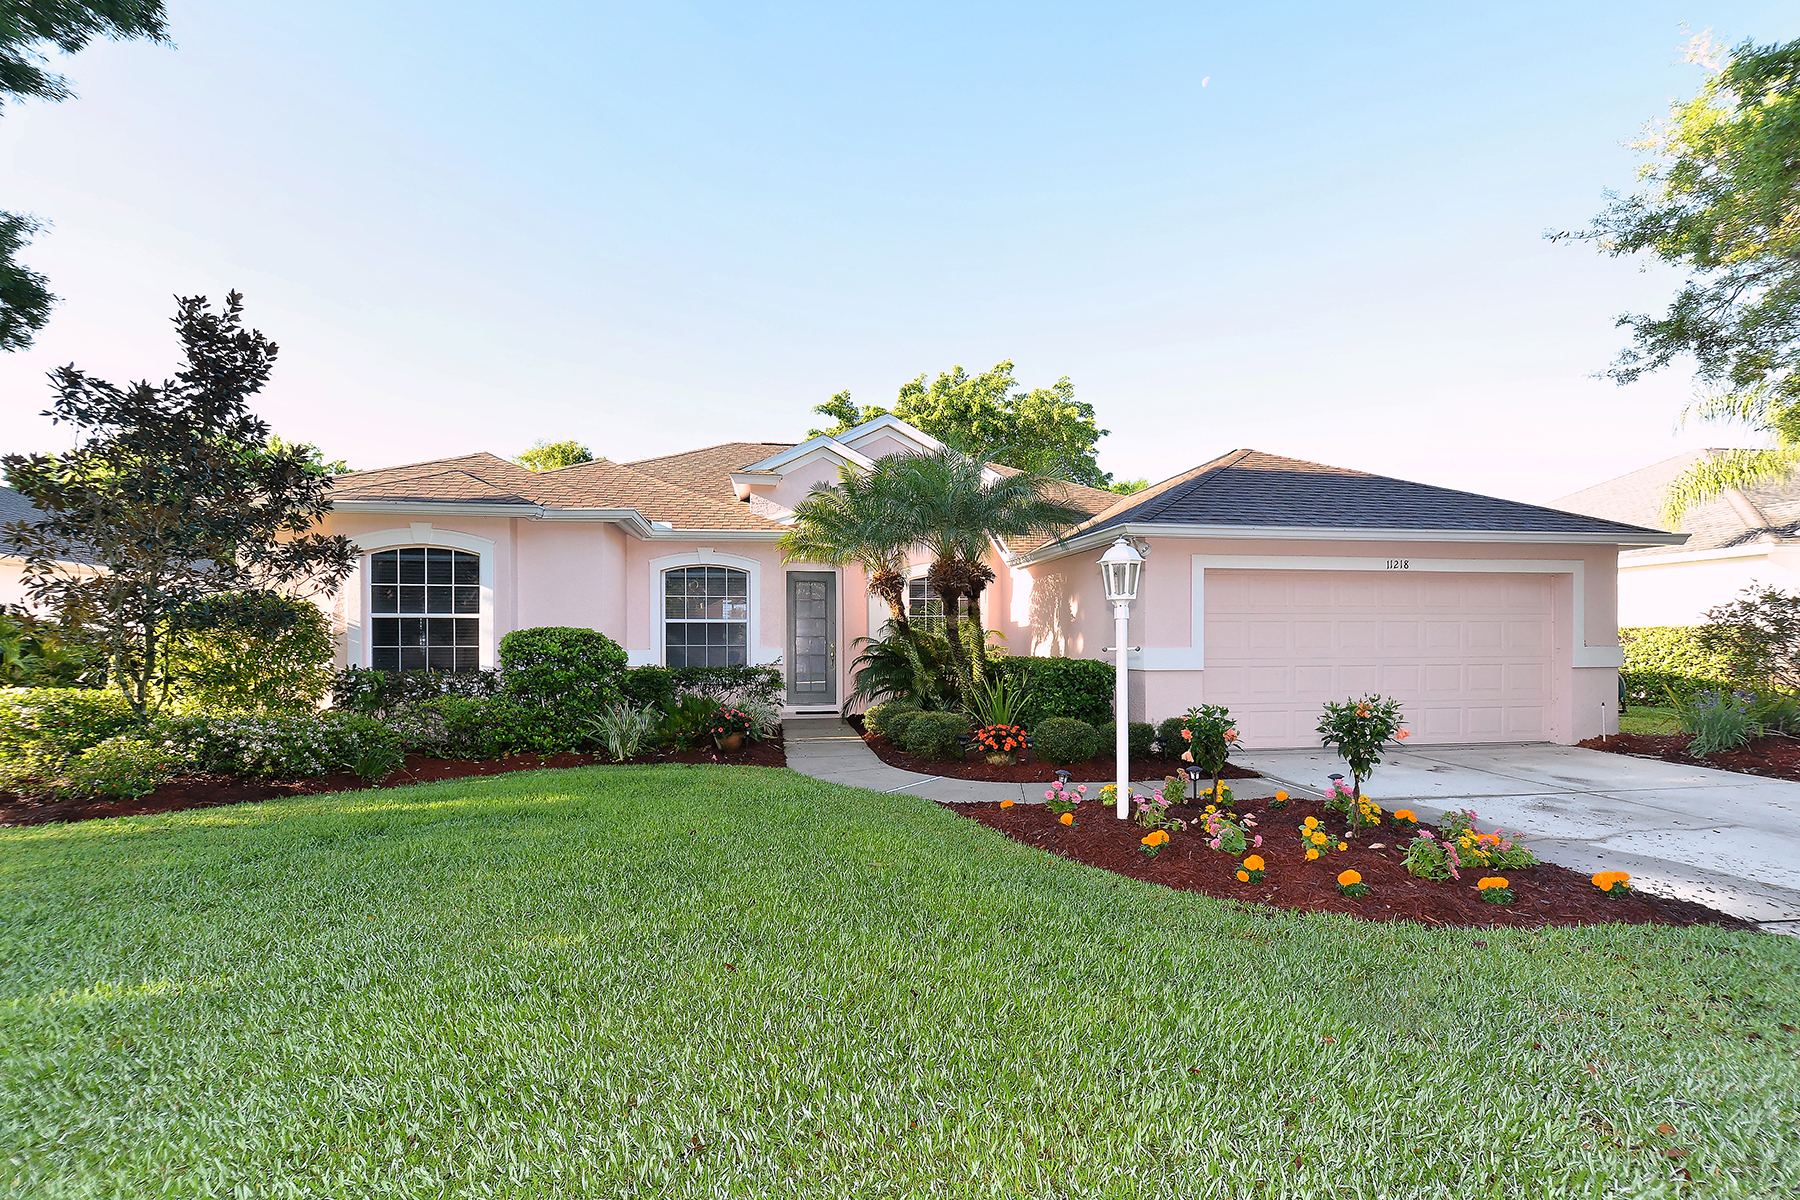 Single Family Home for Sale at LAKEWOOD RANCH - SUMMERFIELD VILLAGE 11218 Pine Lilly Pl Lakewood Ranch, Florida, 34202 United States